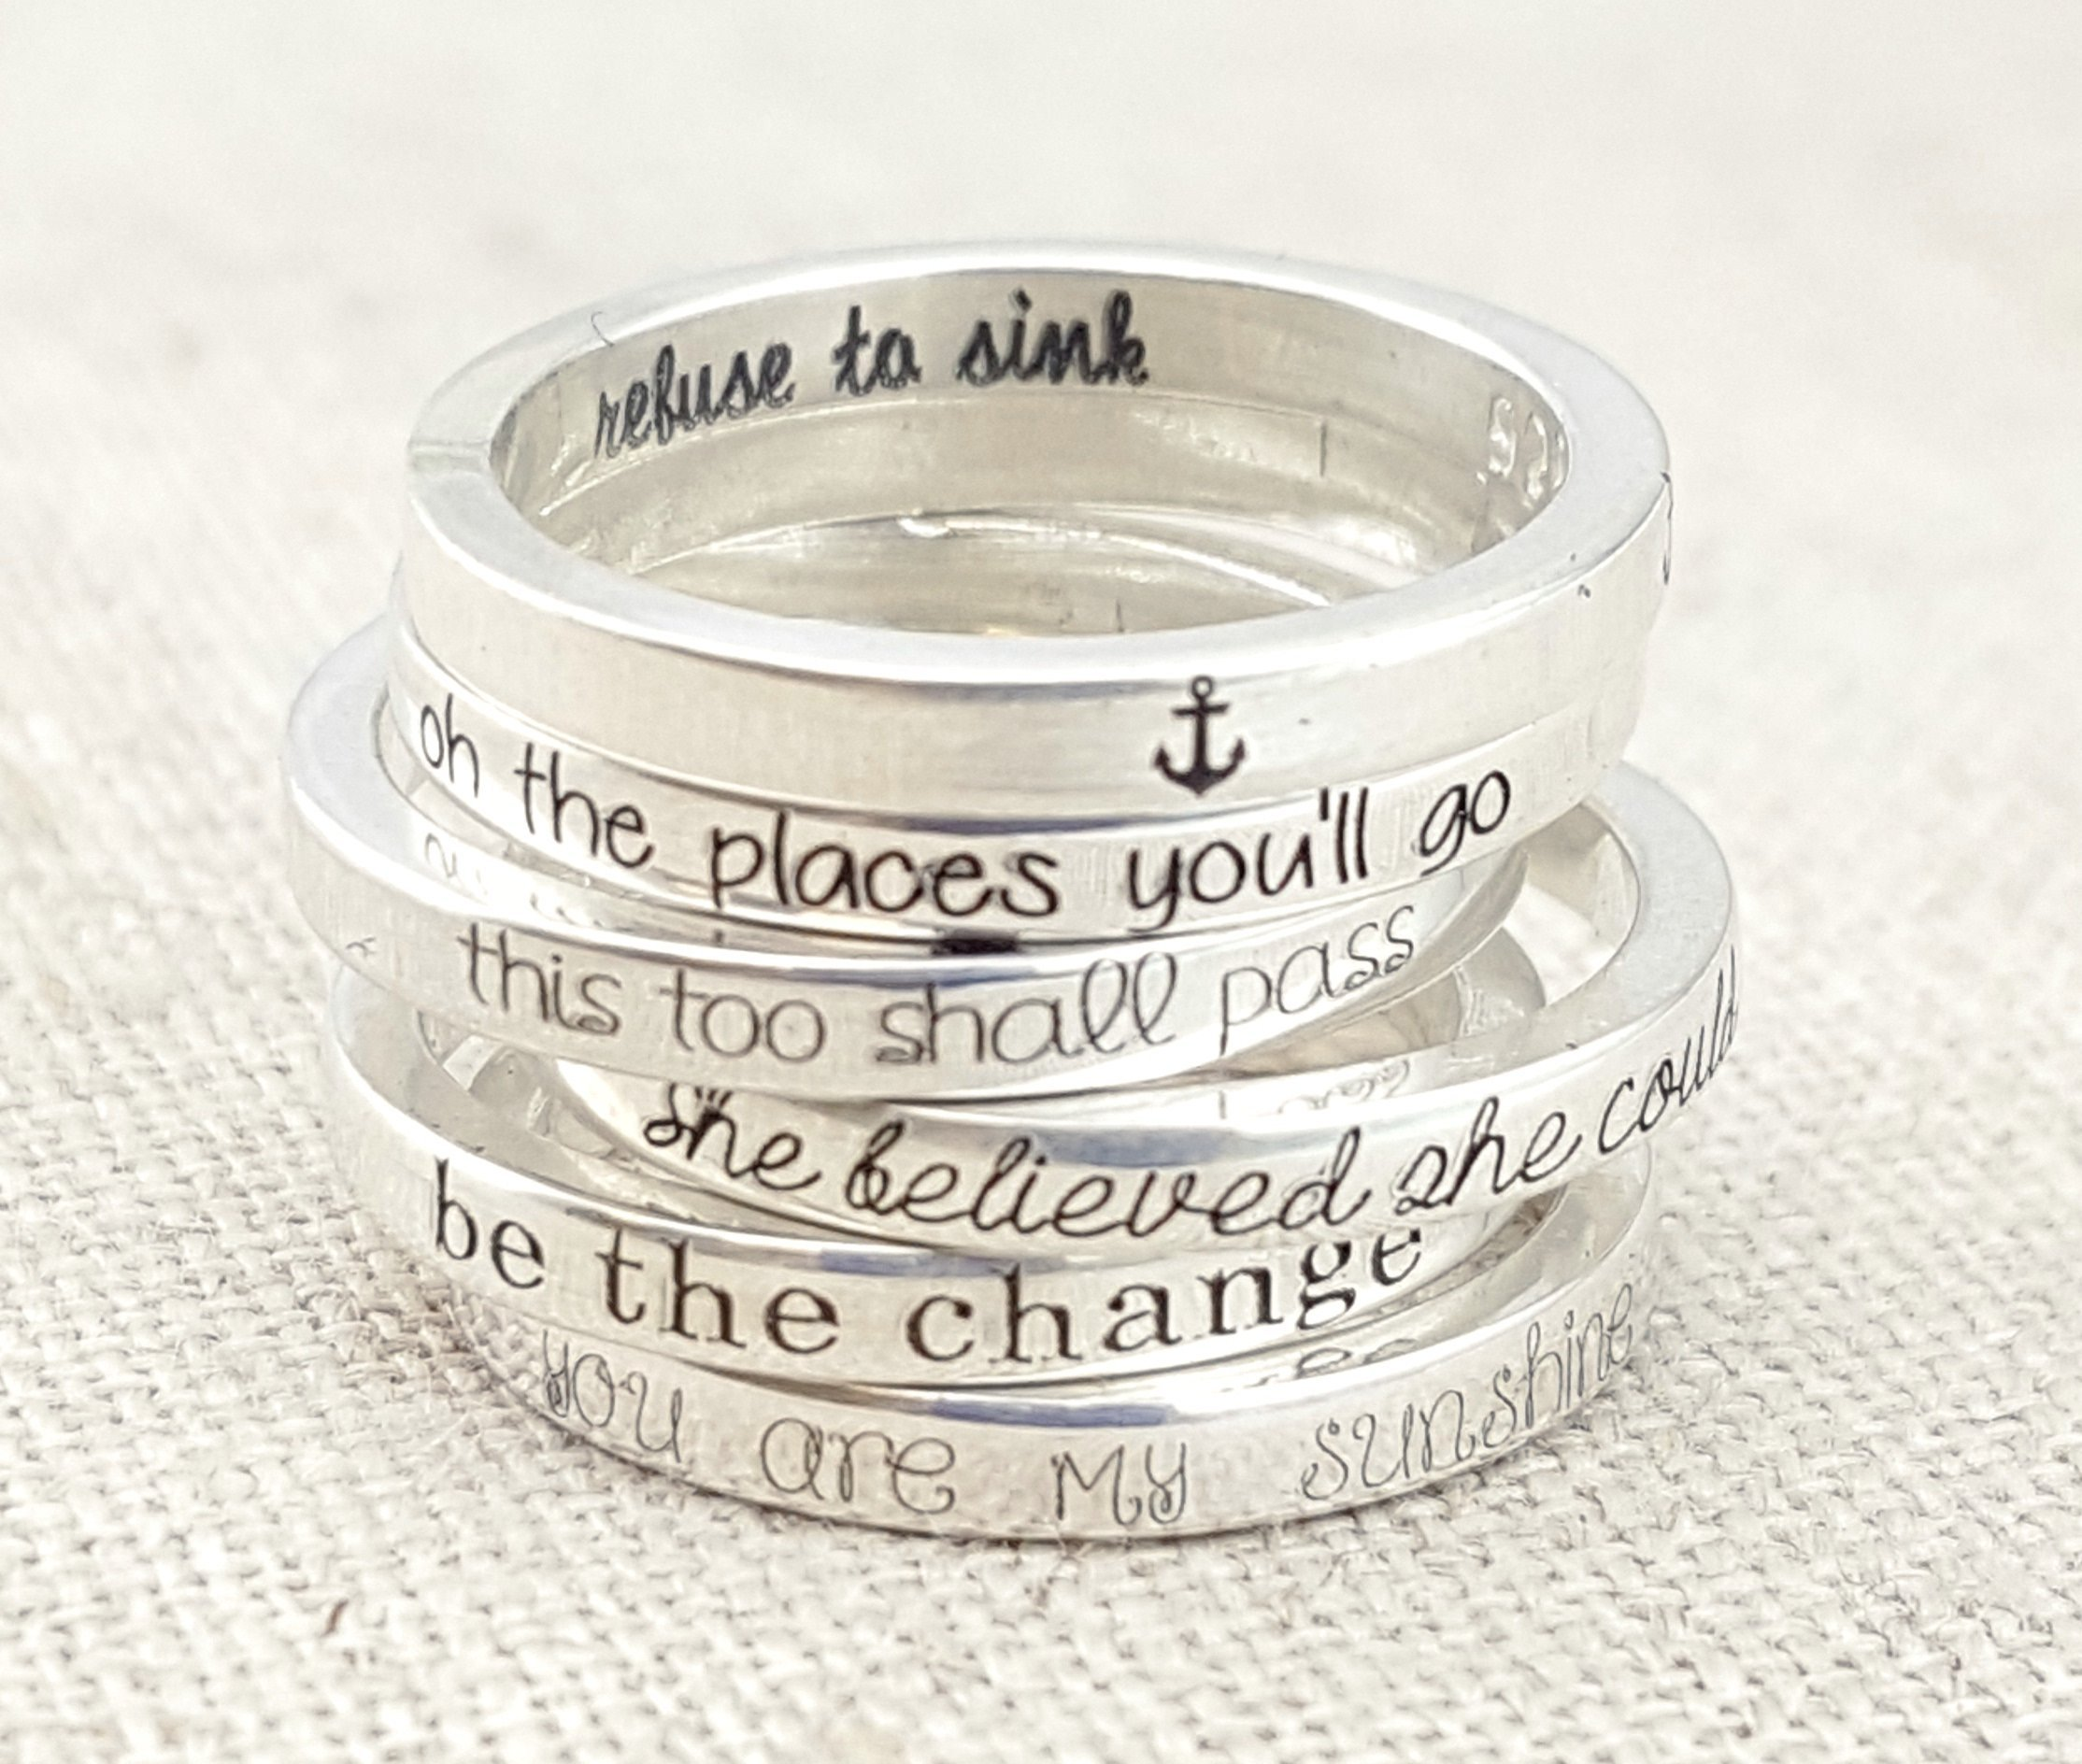 Thin Inspiration Ring - Silver Stacking Ring - 925 Silver Ring - Refuse to Sink - This too shall pass - Silver Jewelry